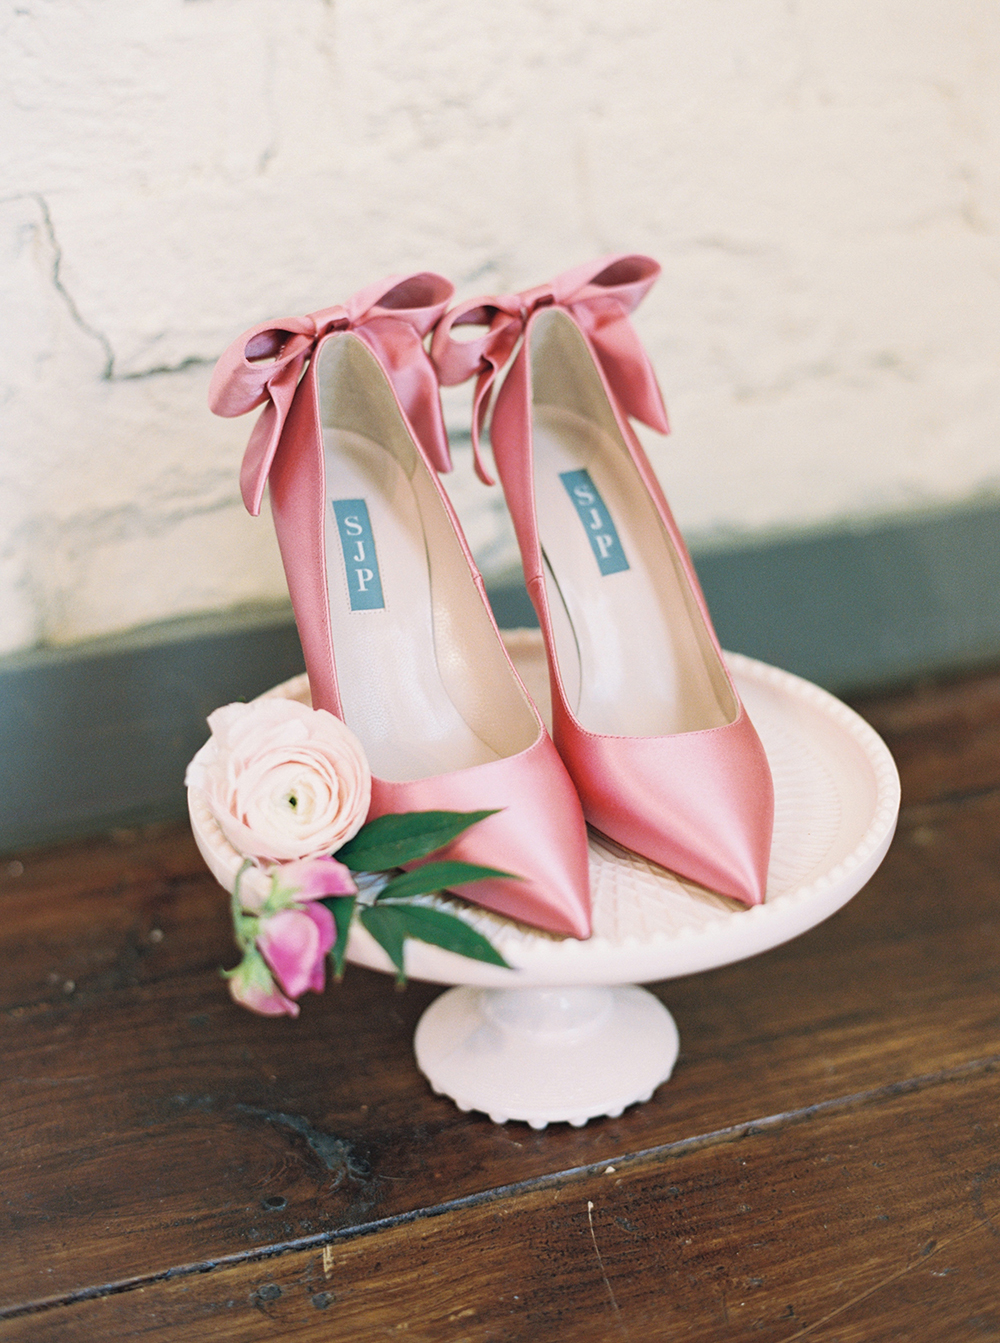 pink satin wedding shoes - photo by Jessica Gold Photography http://ruffledblog.com/vibrant-summer-wedding-inspiration-with-fun-colors